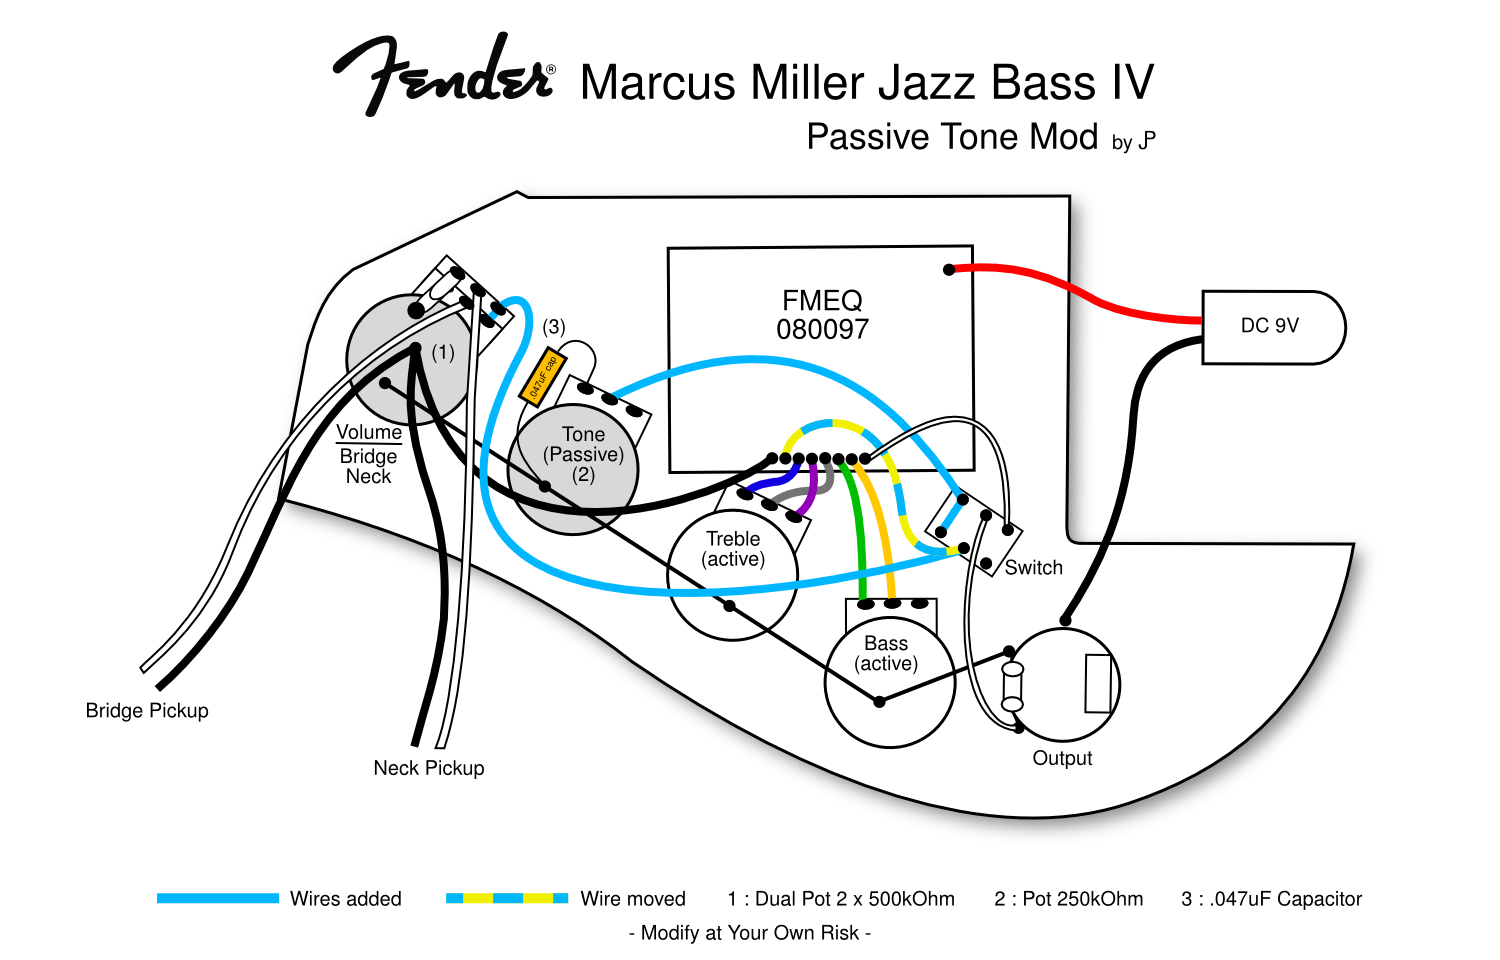 Fender Marcus Miller Jazz Bass Wiring Diagram. tutoriel tone passive pour  jazz bass marcus miller. how to add passive tone switch to marcus miller.  fender marcus miller japan wiring diagram. fender wiringA.2002-acura-tl-radio.info. All Rights Reserved.